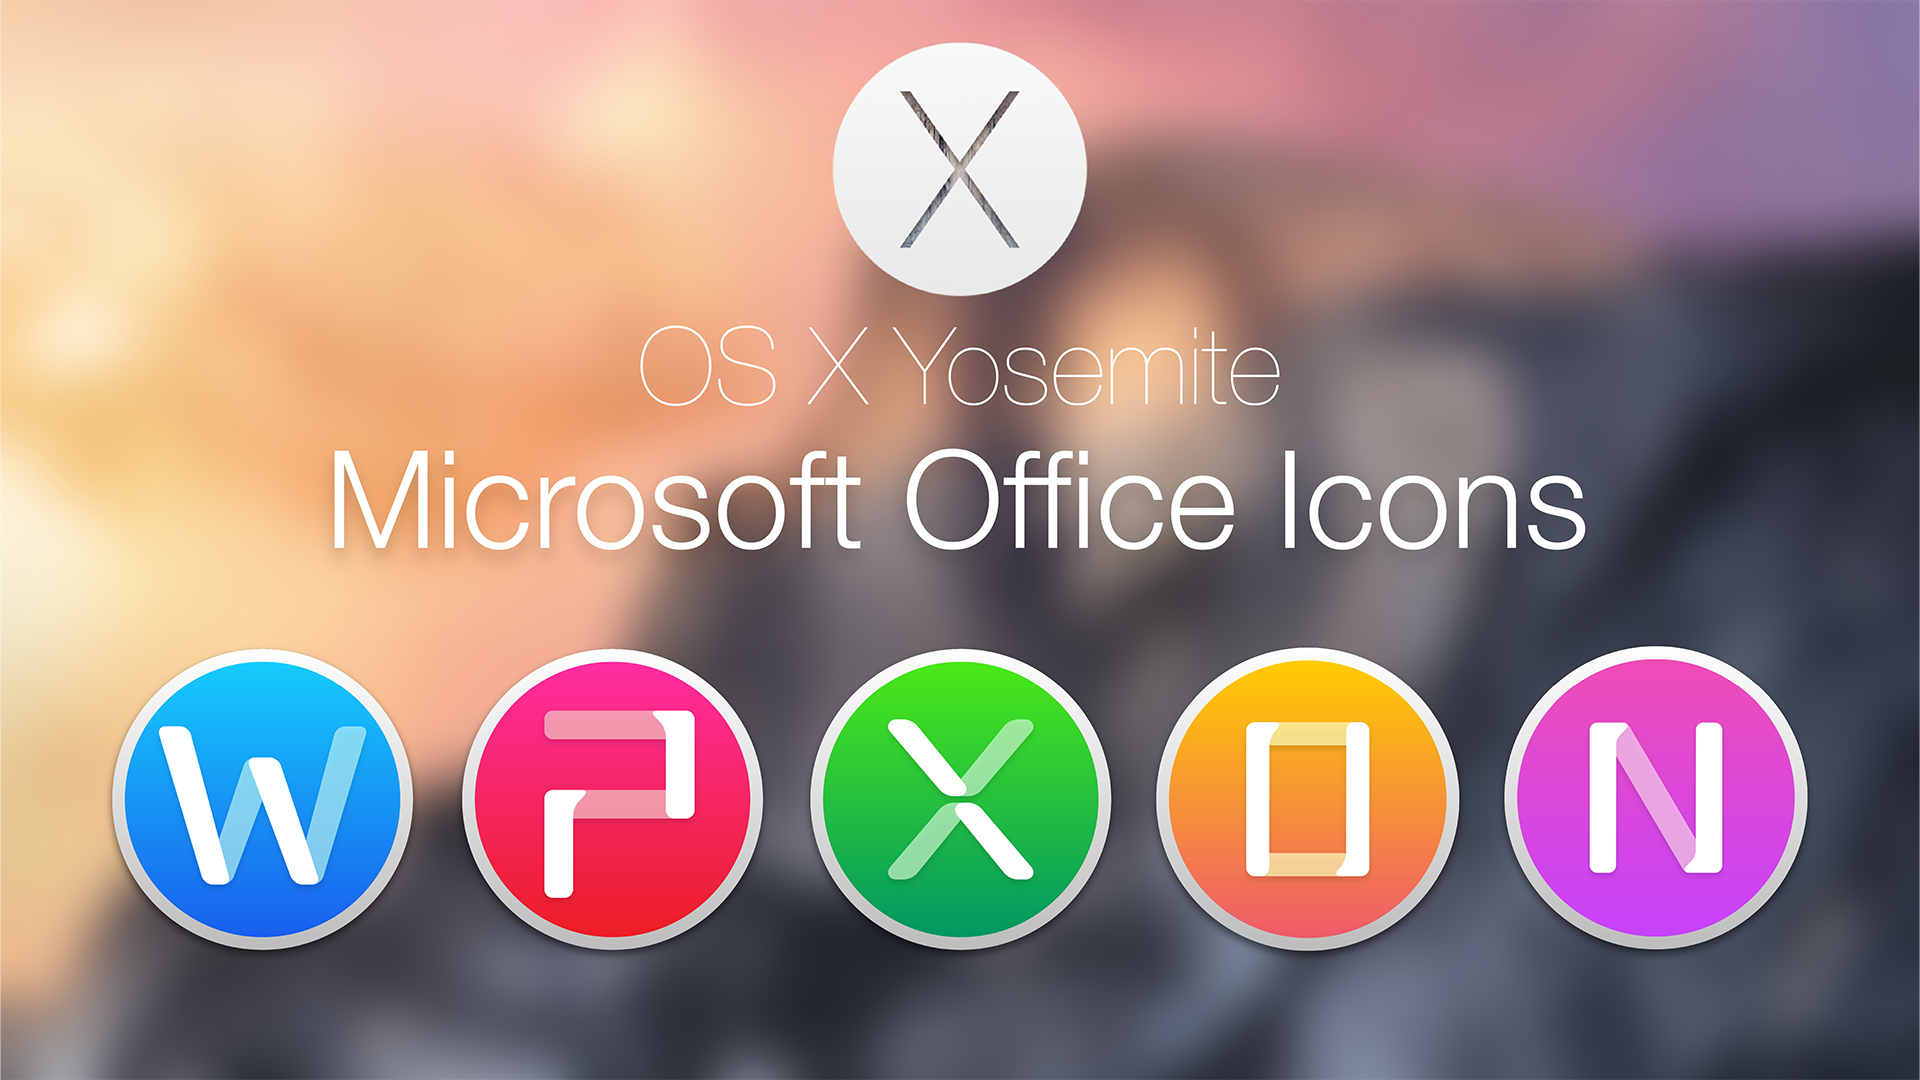 Microsoft Office 2011 Yosemite Style by hamzasaleem Microsoft Office 2011  Yosemite Style by hamzasaleem - Microsoft Office PNG HD